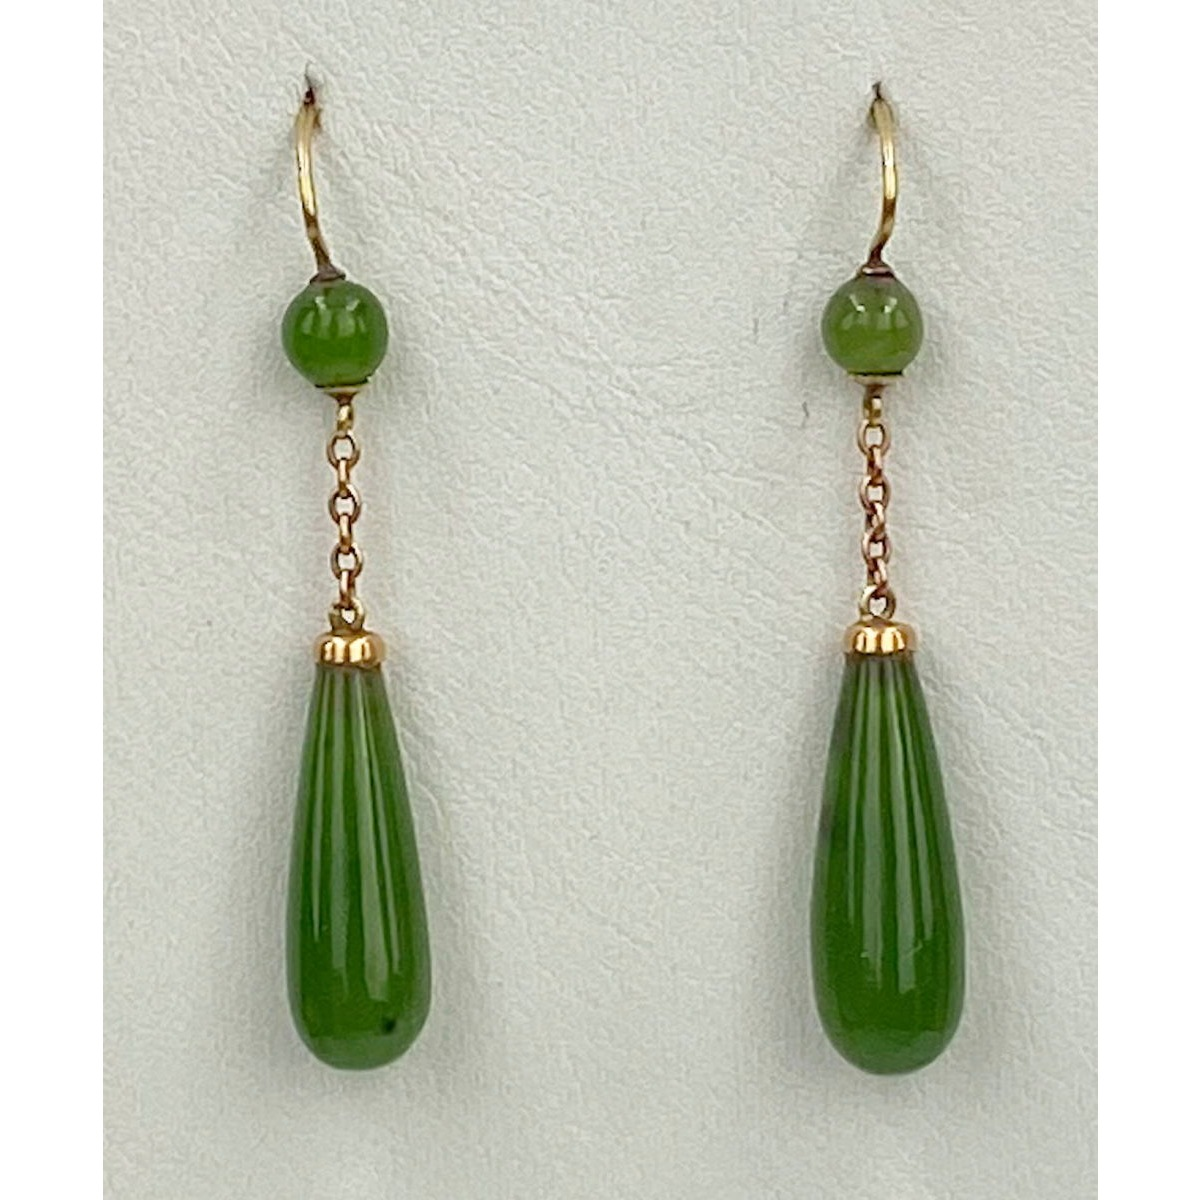 Gorgeous Jade Pendant Earrings on 15 karat Gold Wires